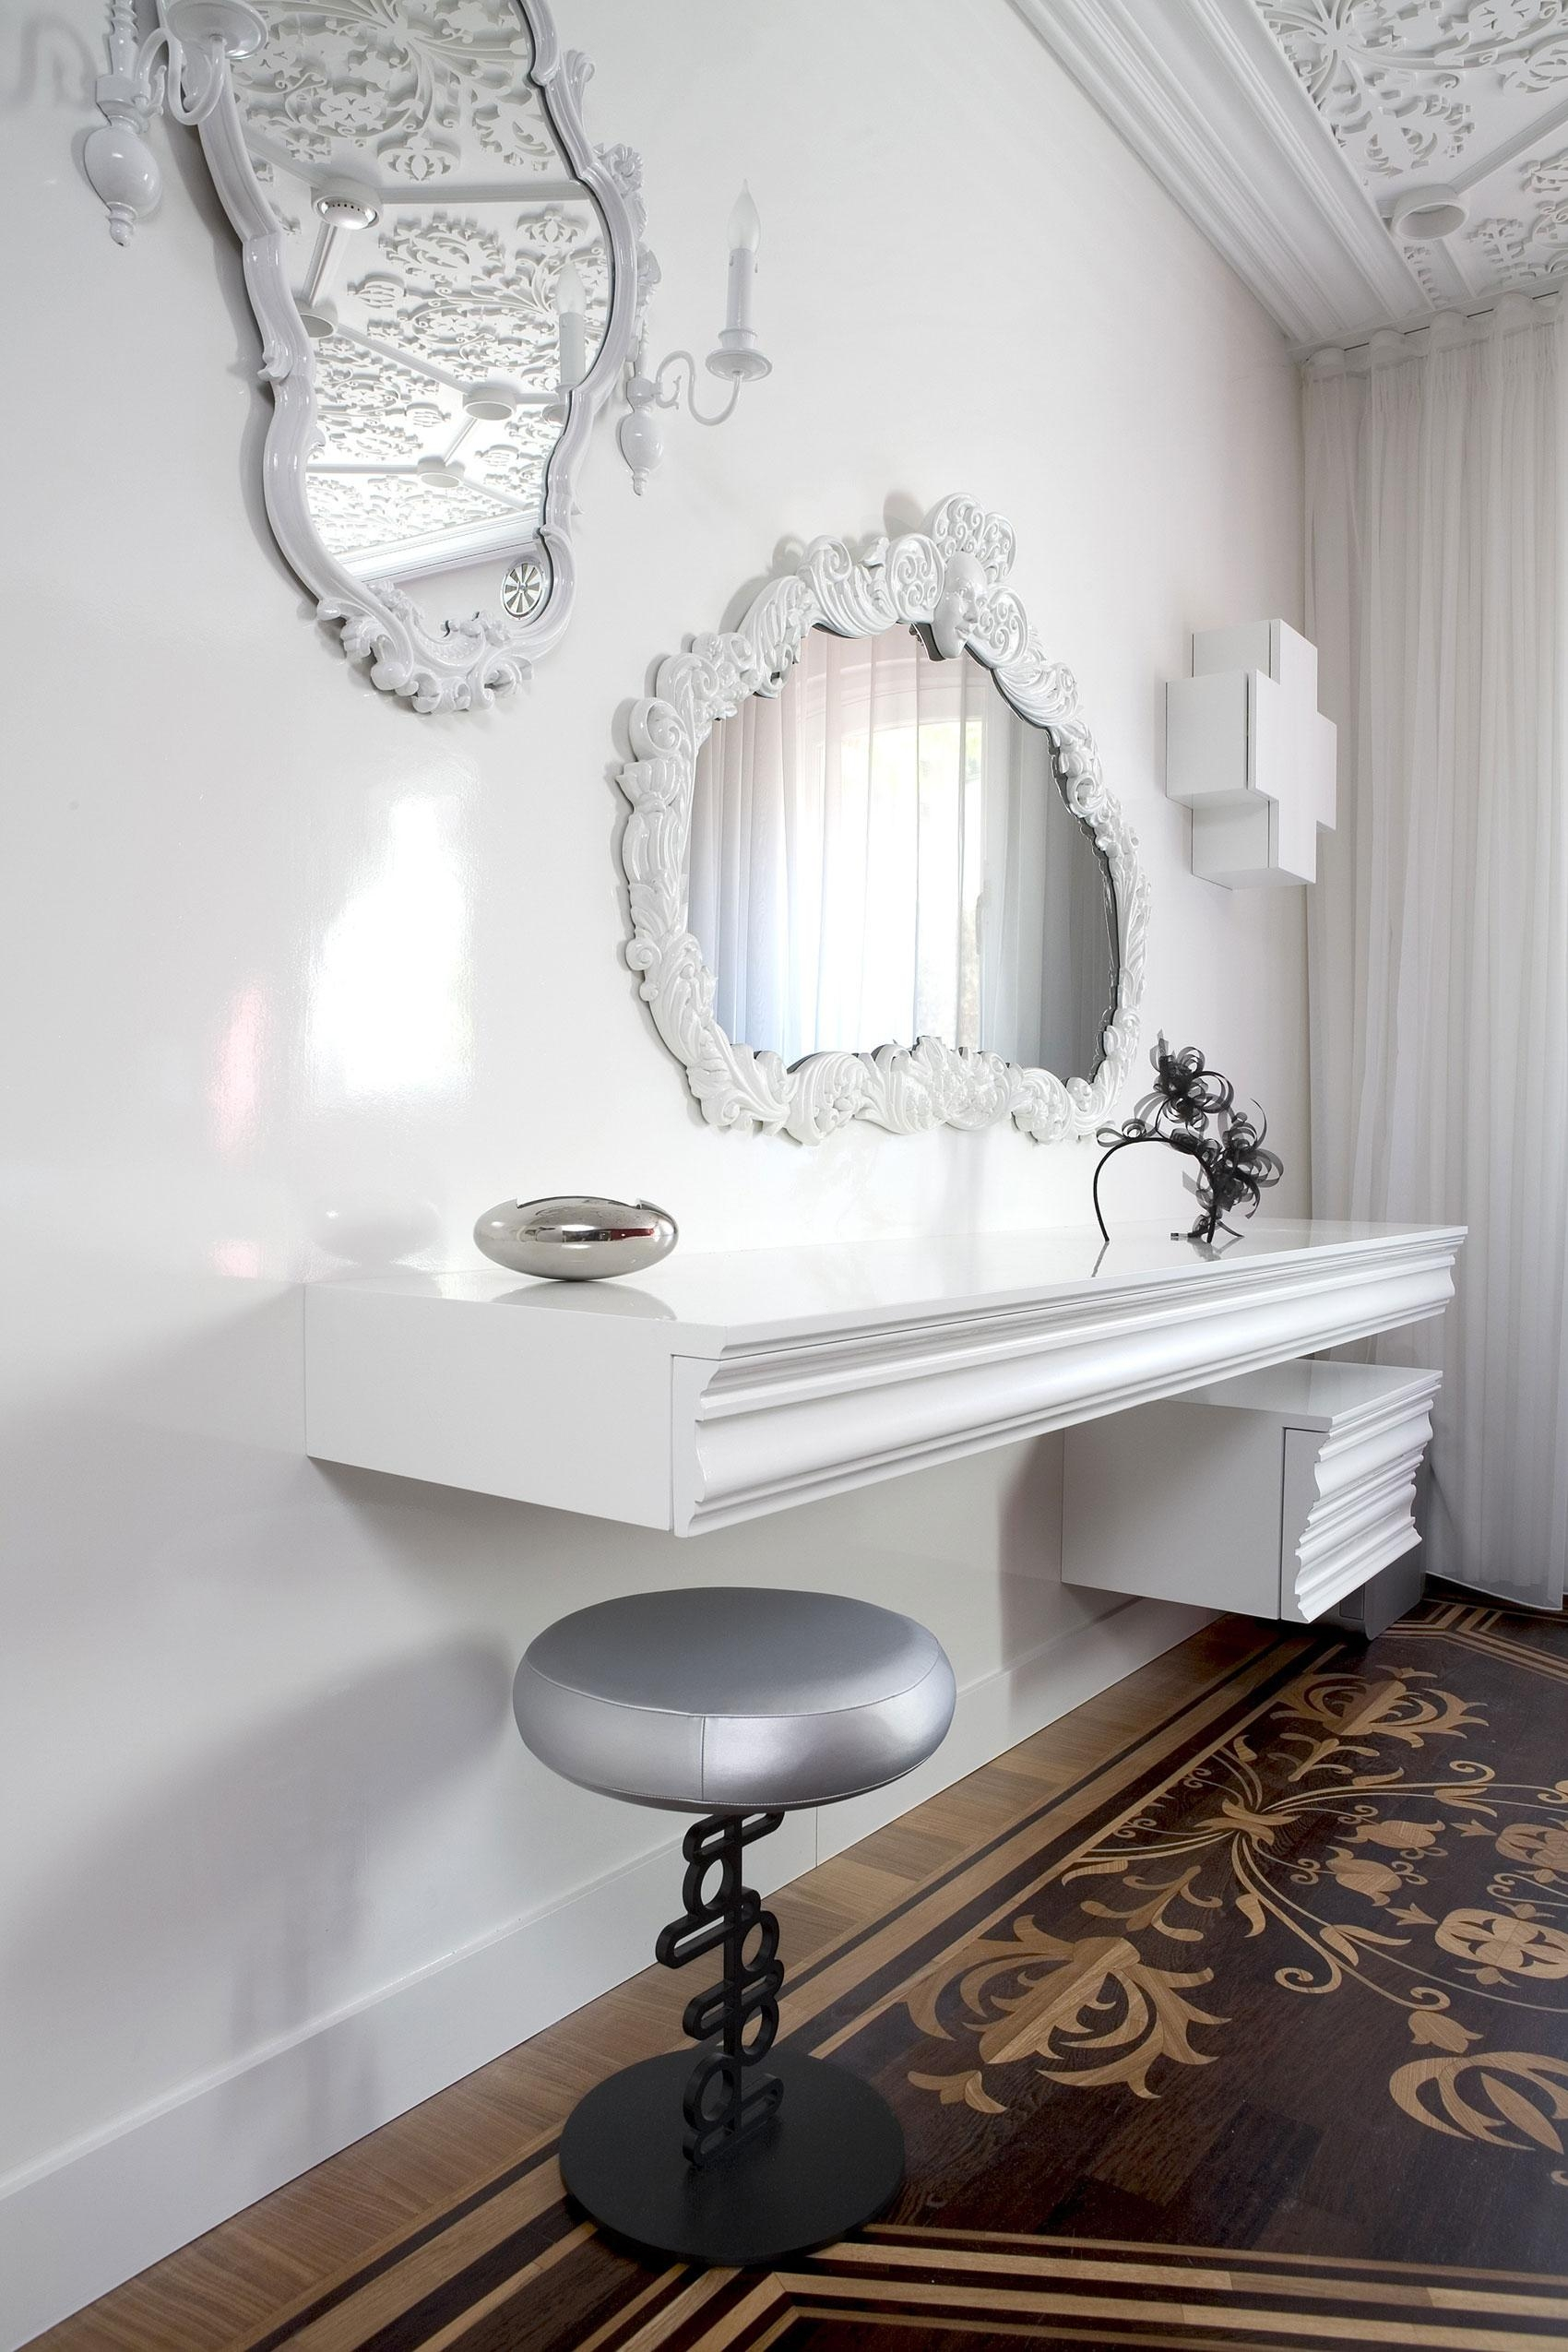 20 ideas of wall mounted mirrors for bedroom mirror ideas interesting wall mounted mirrors bedroom with furniture appealing in wall mounted mirrors for bedroom image amipublicfo Choice Image